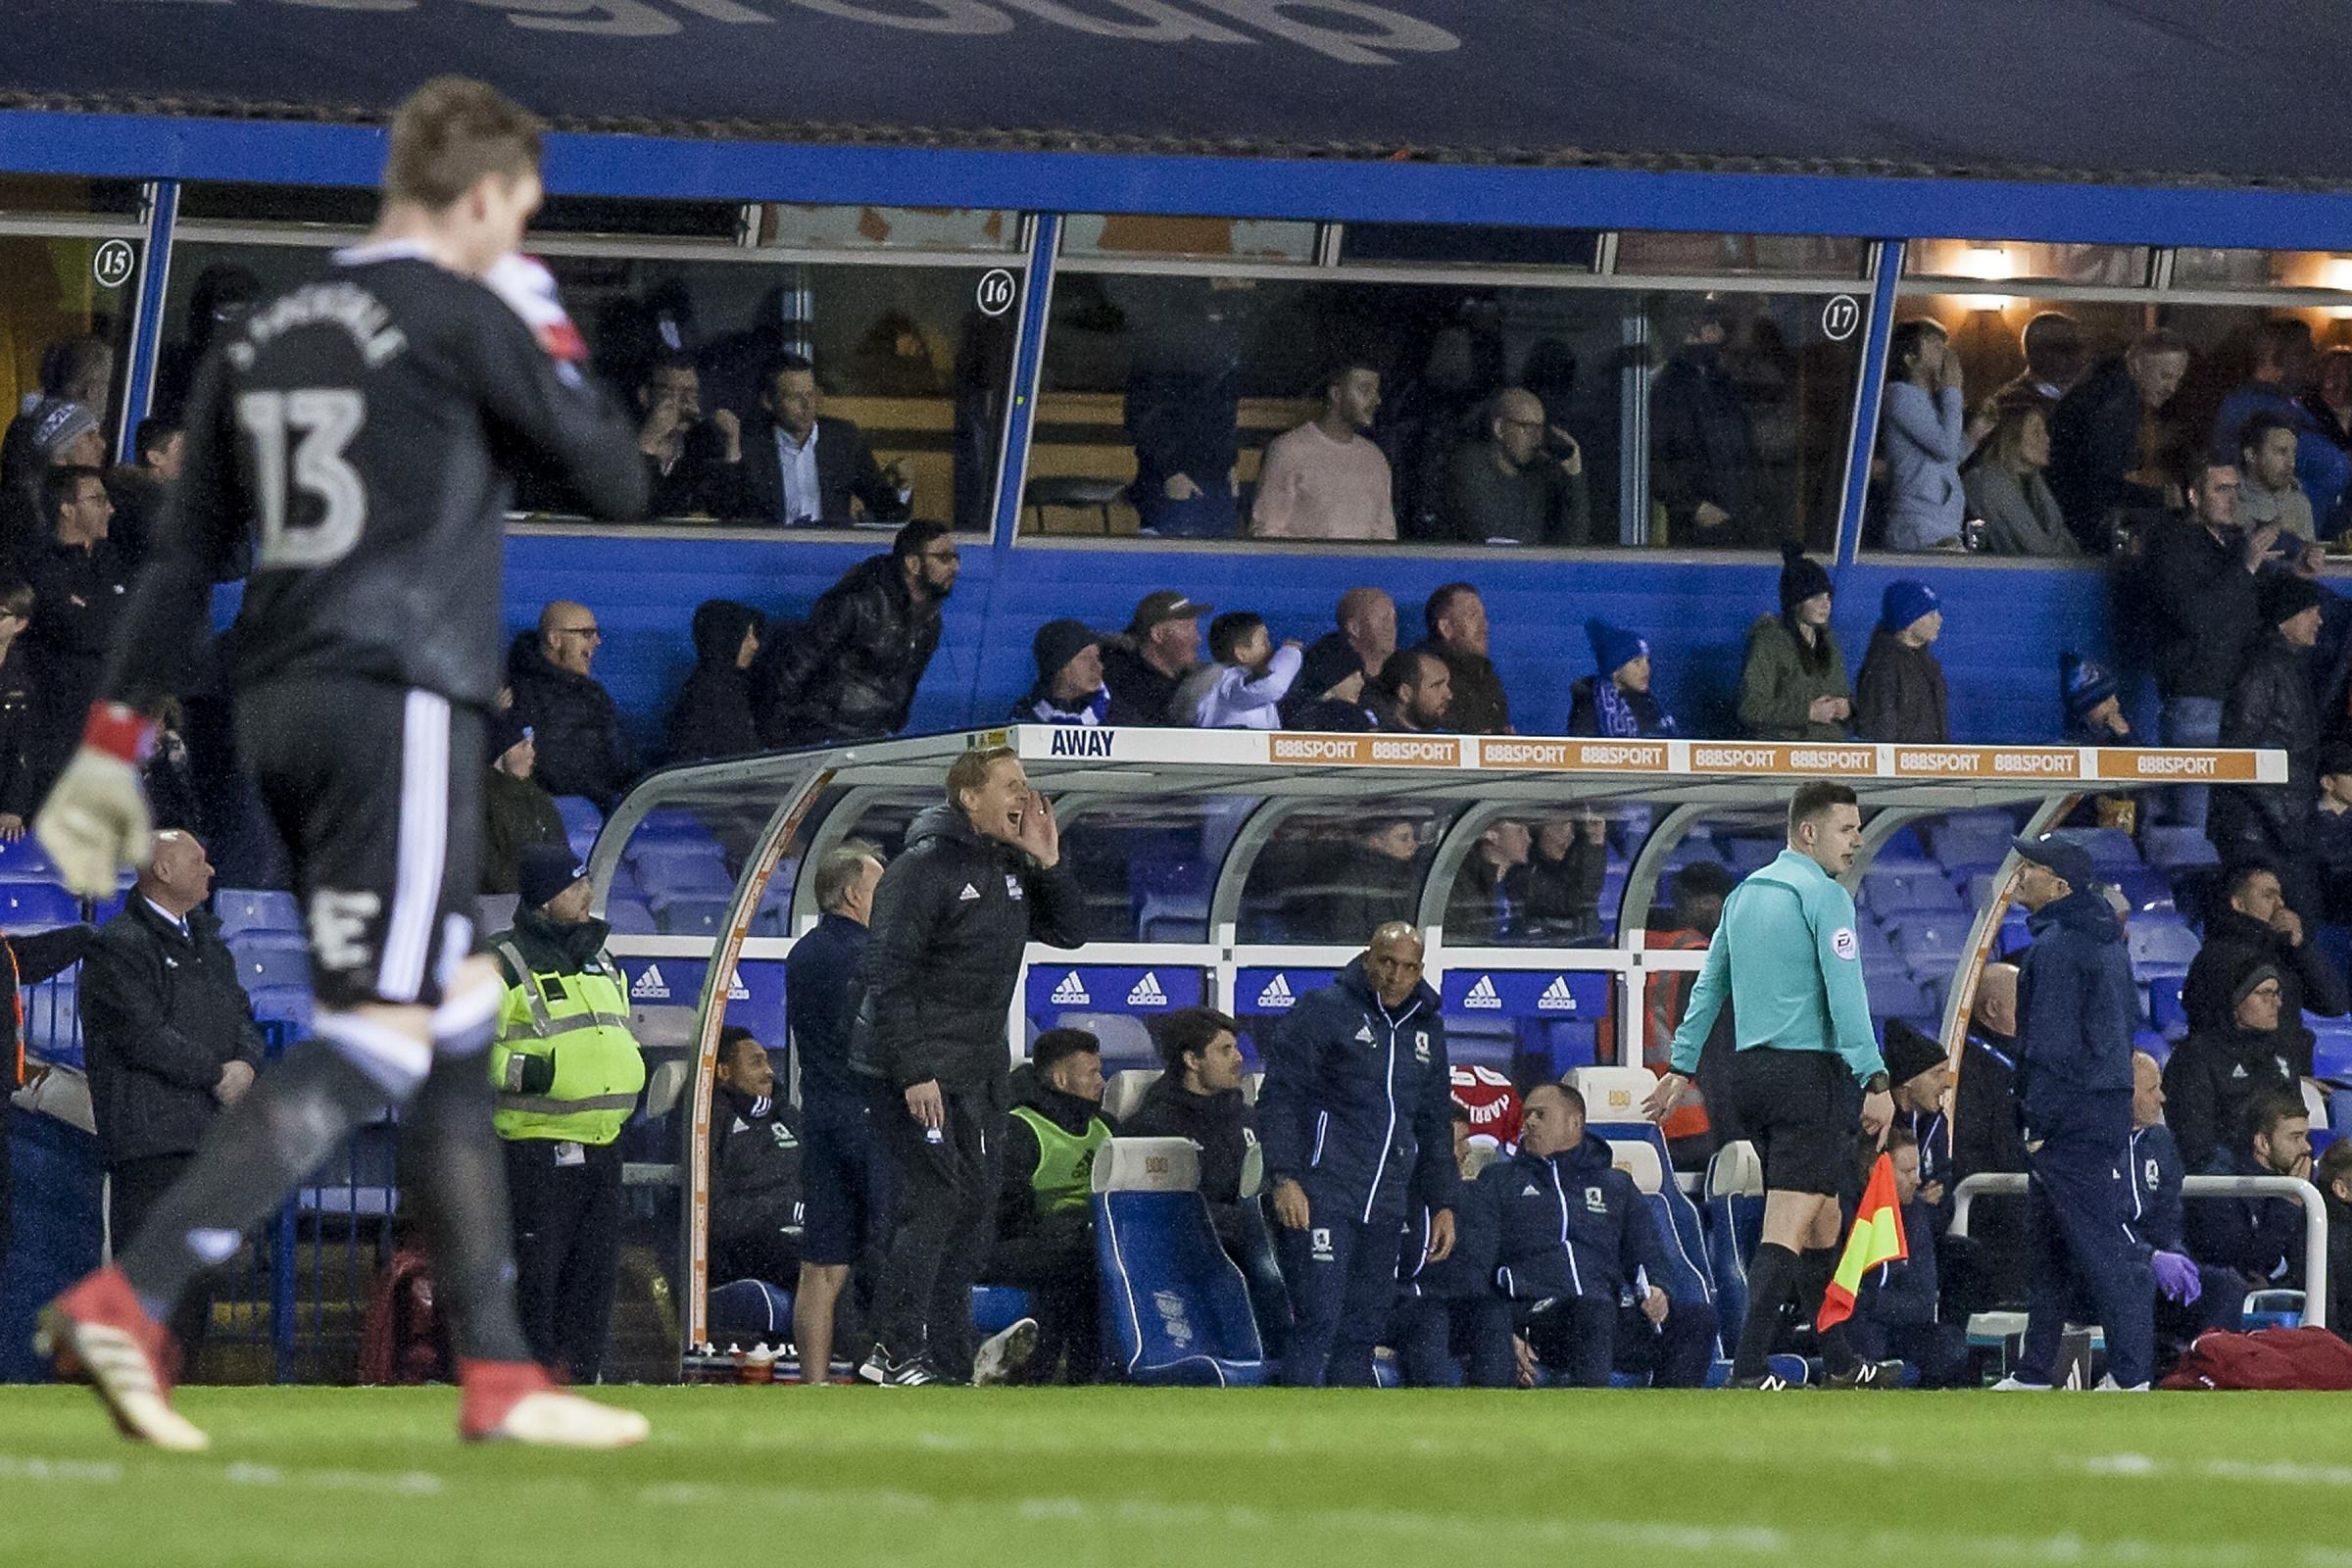 Garry Monk shouts instructions as Tony Pulis looks on. Picture: PA